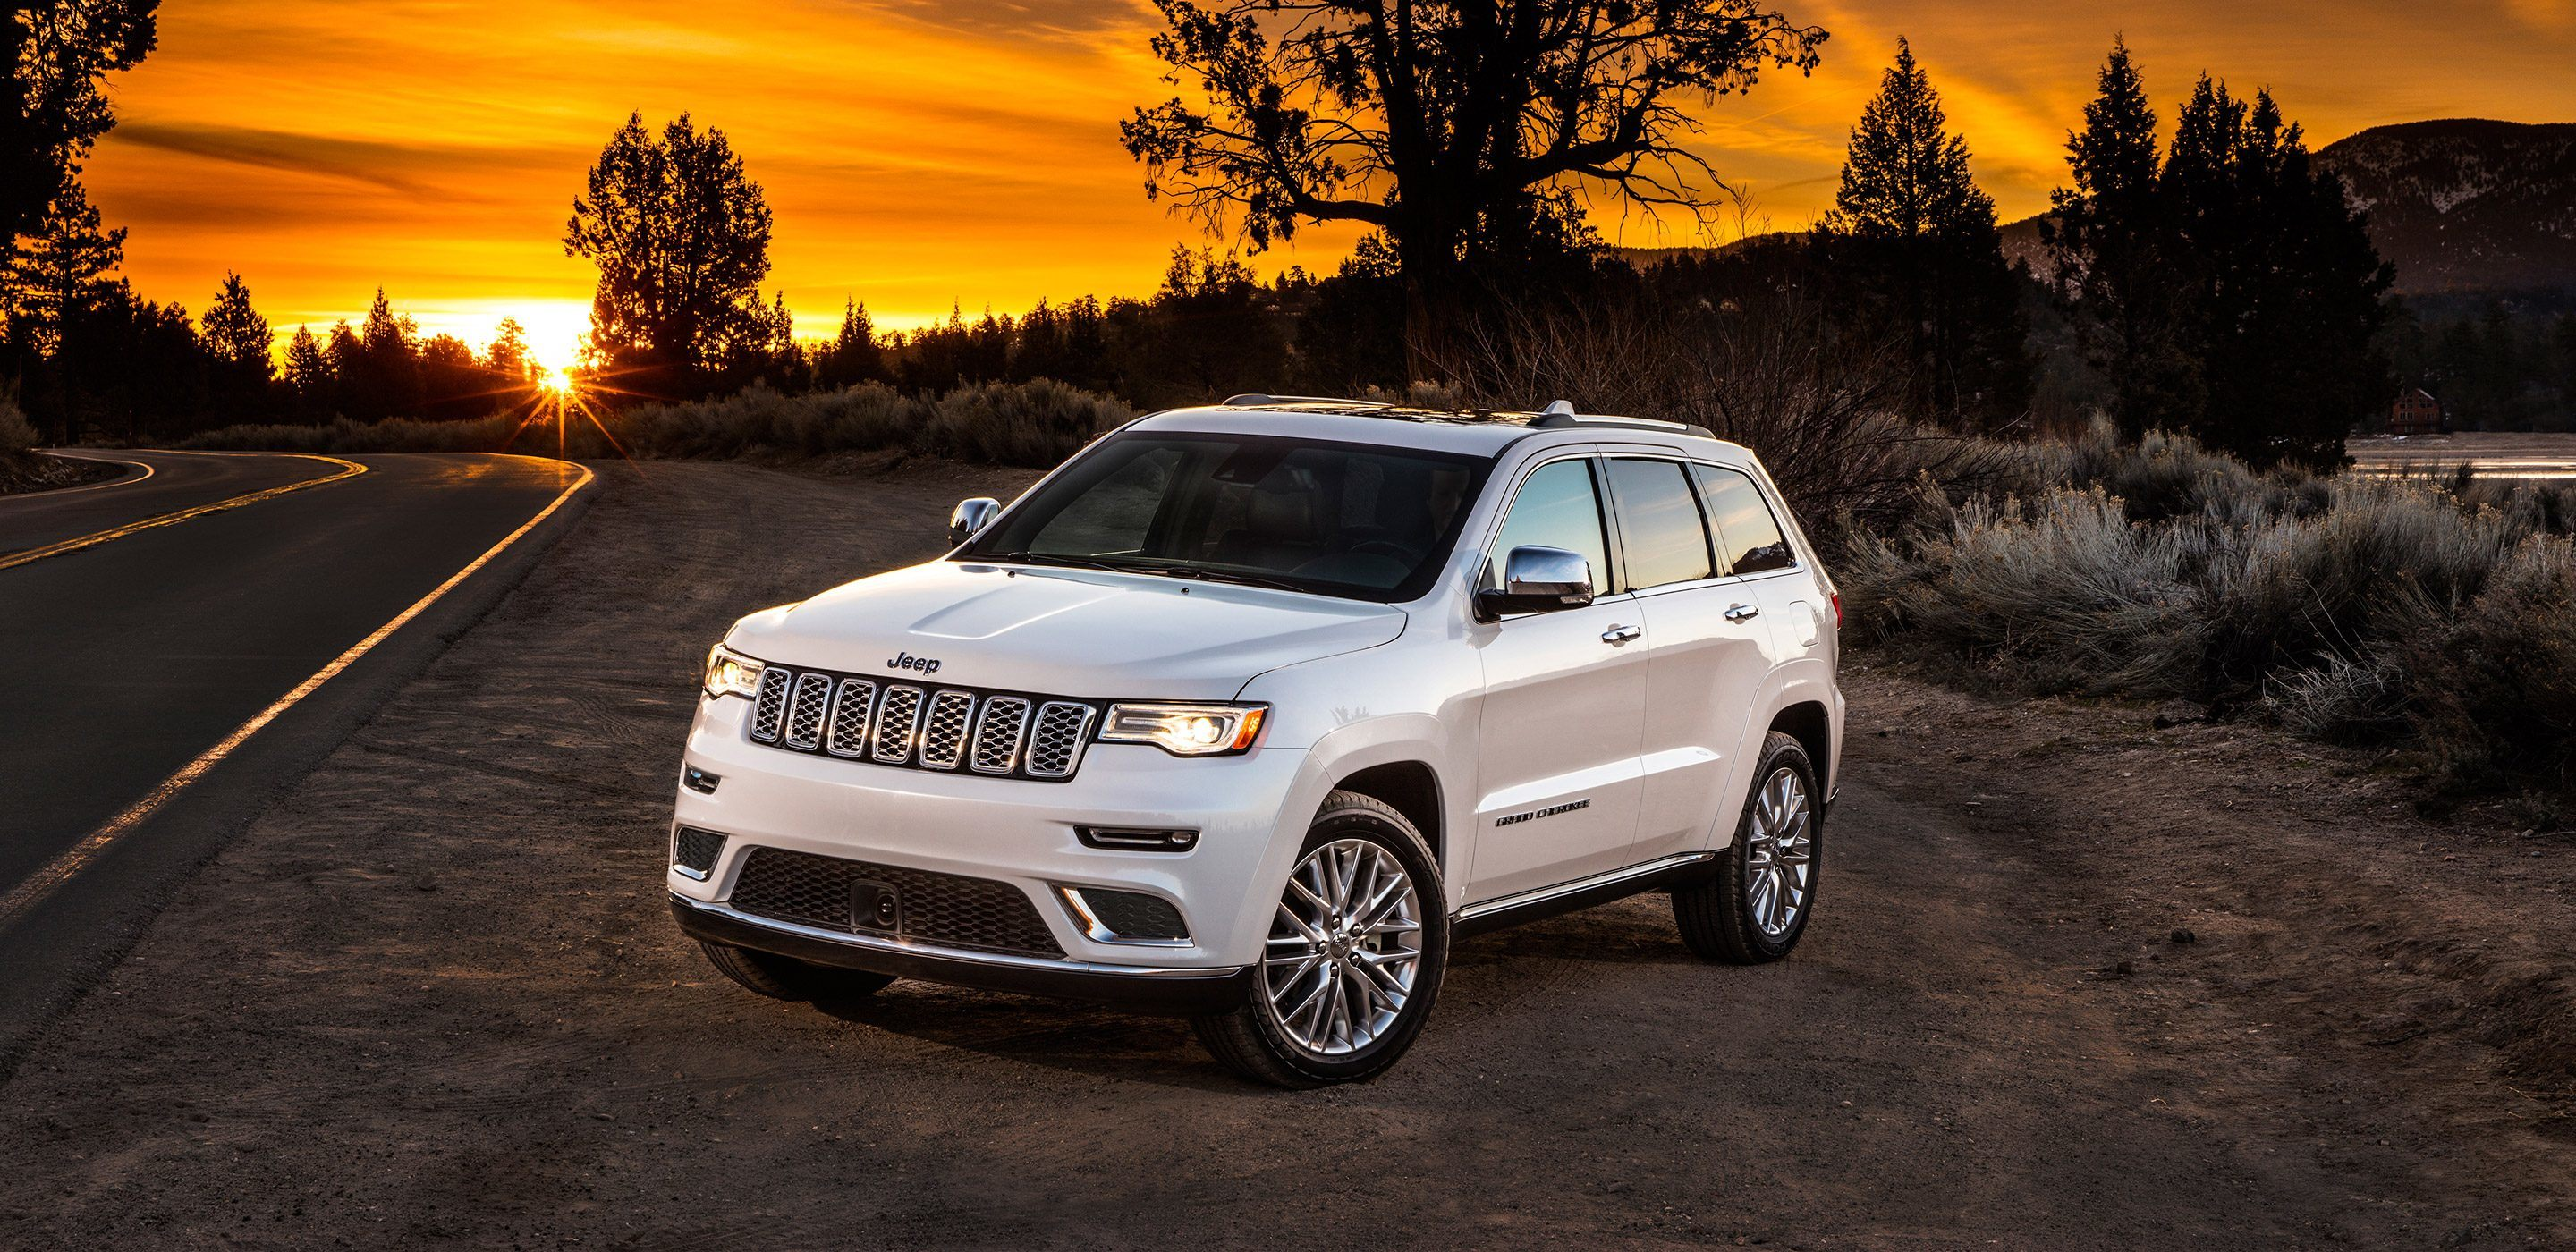 2018-Jeep-Grand-Cherokee-VLP-Gallery-Summit-White.jpg.image.2880